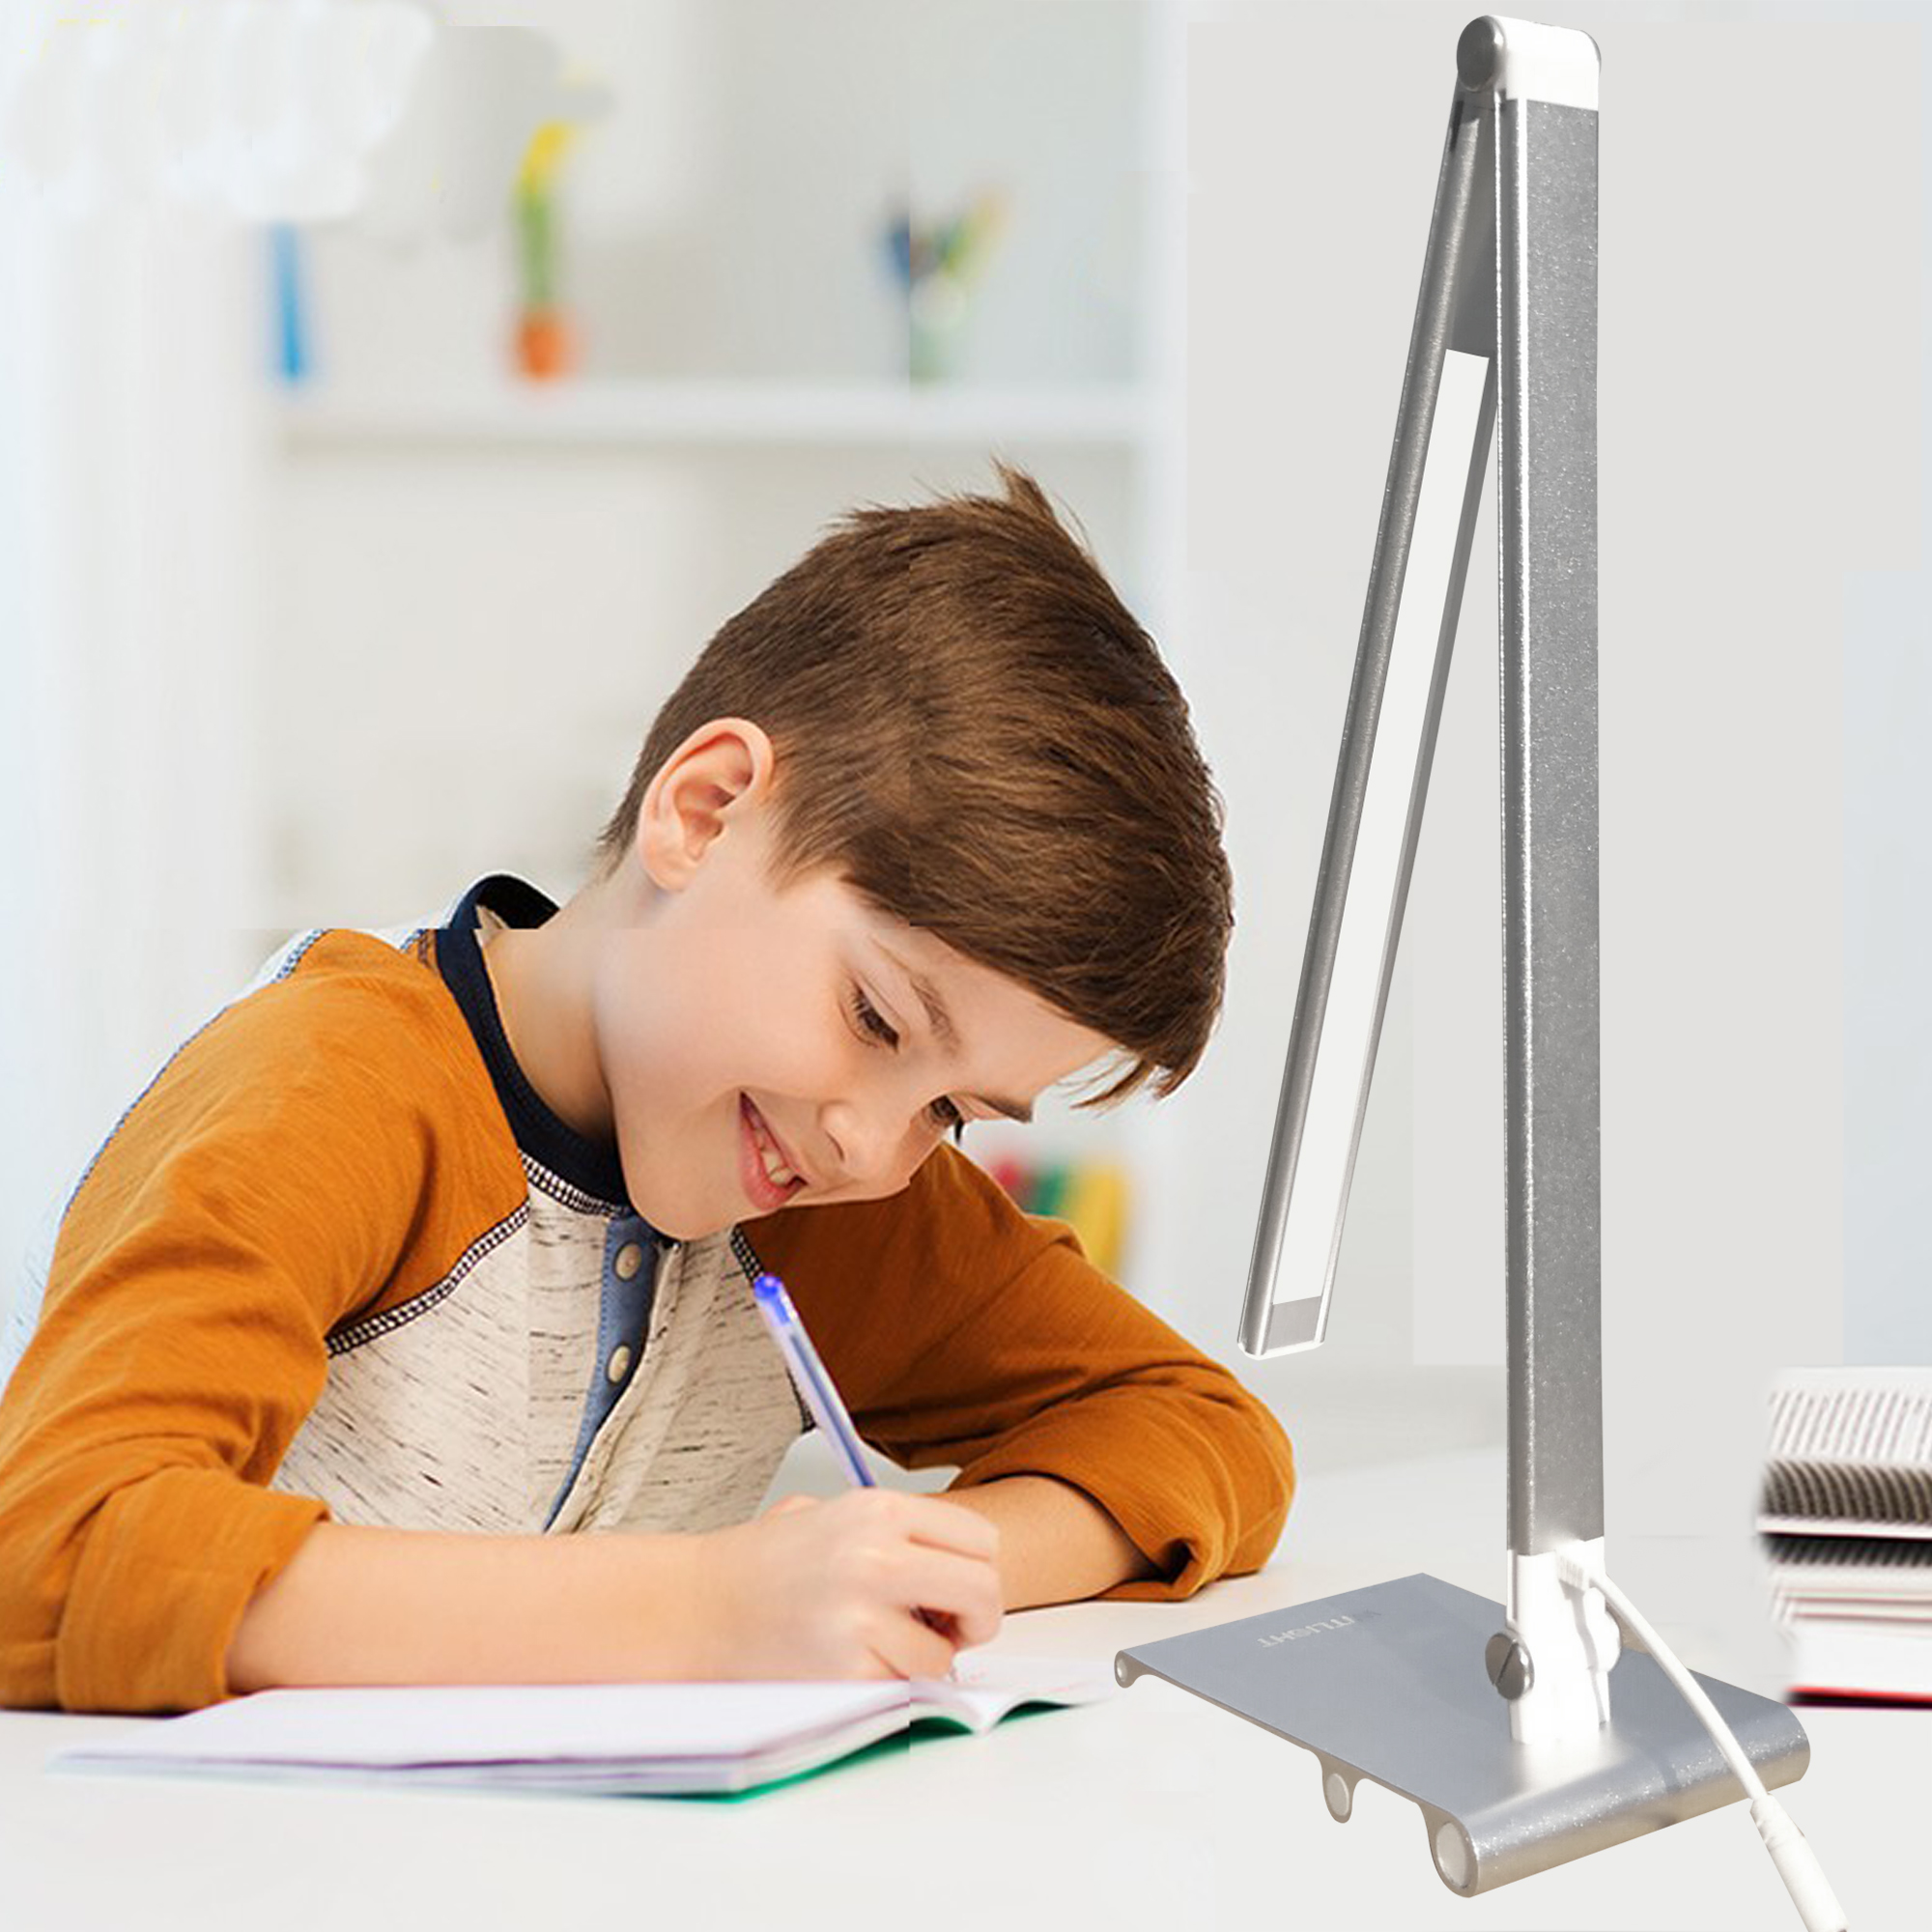 Sleek Table Lamp For Teen Reading Light